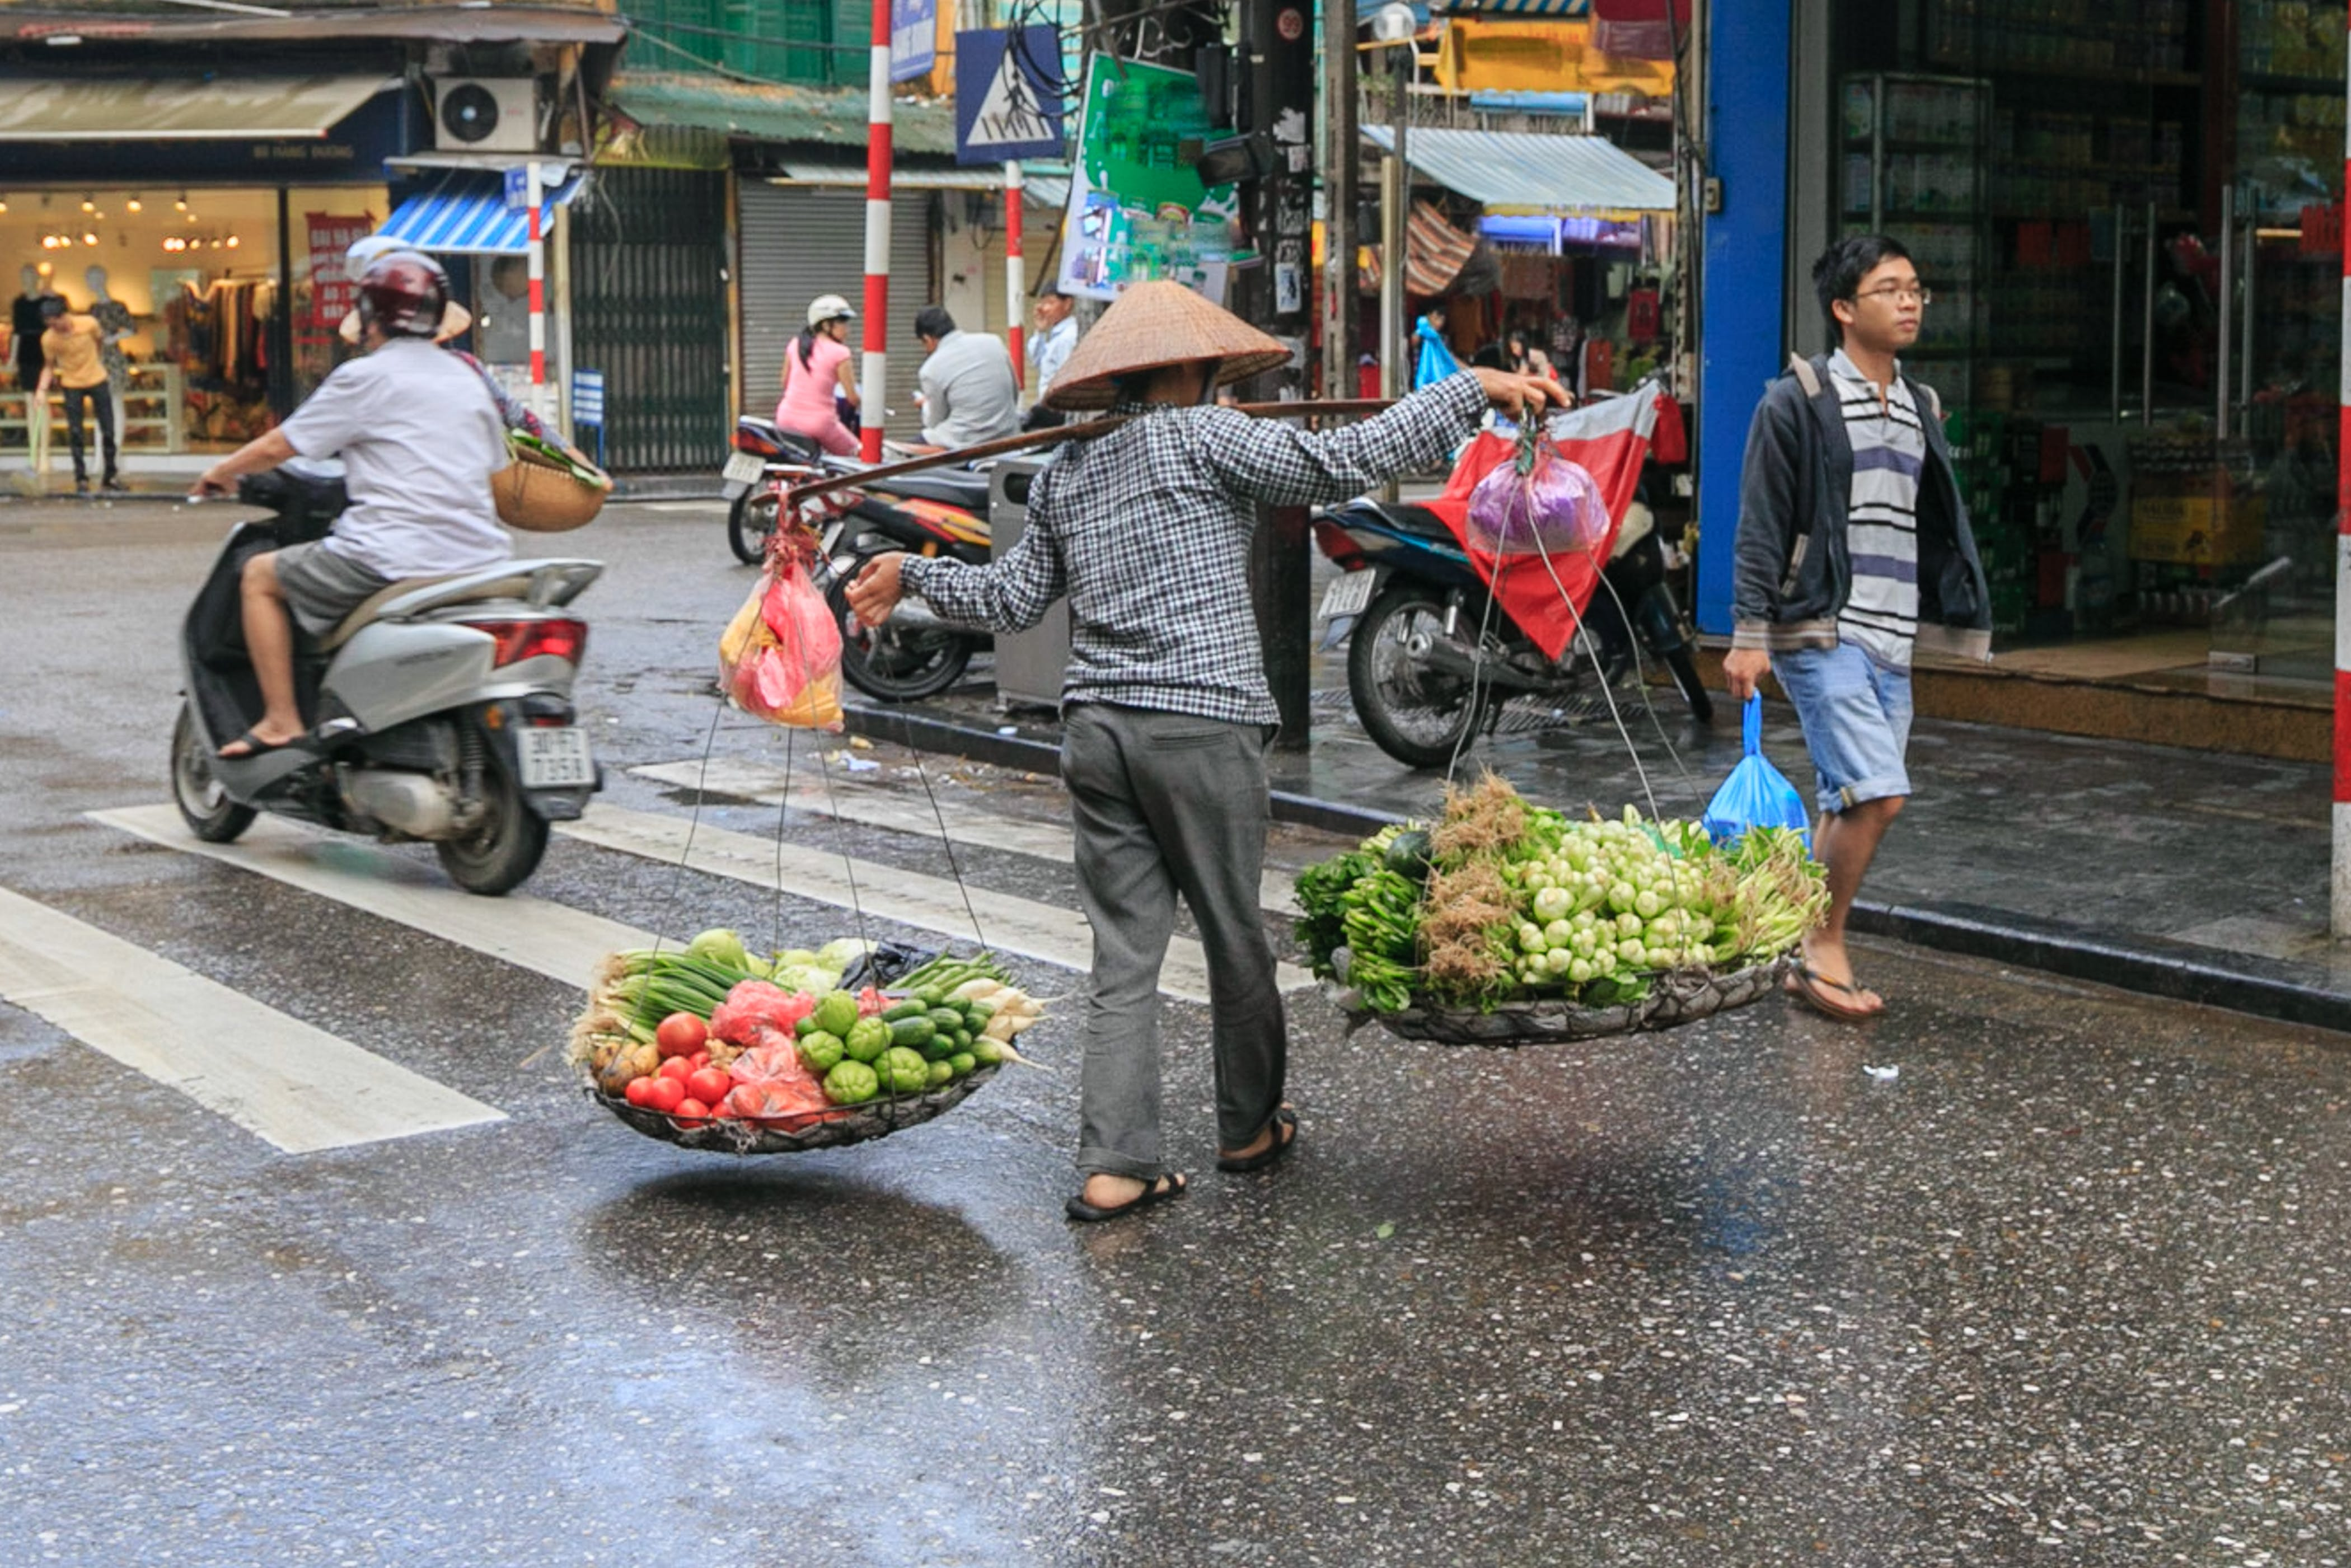 Person Carrying Vegetables Passing on Road